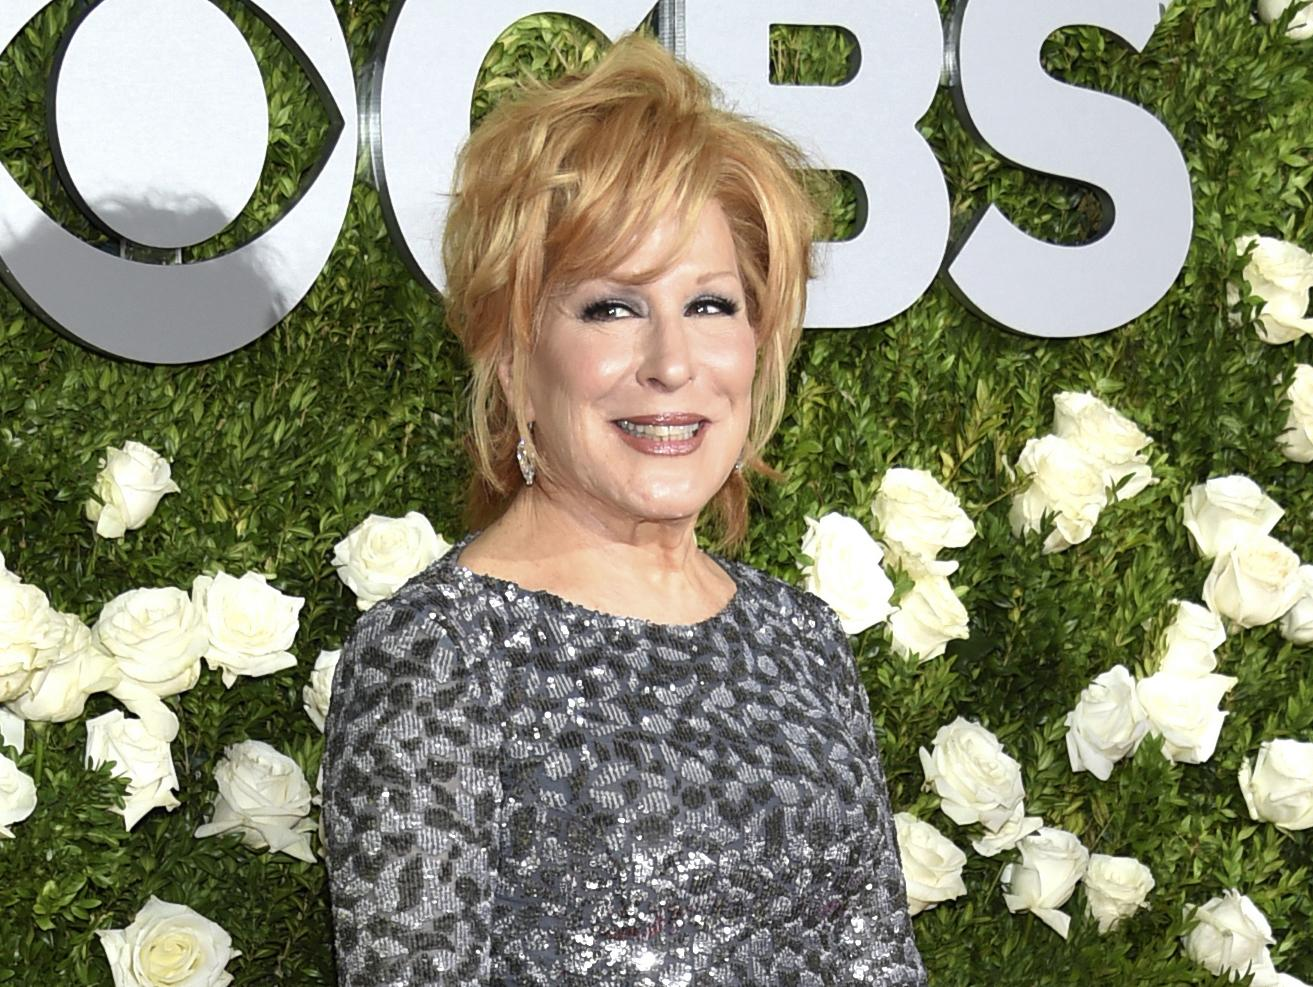 Bette Midler suggests black Trump supporters were paid to be 'blackground' at rally